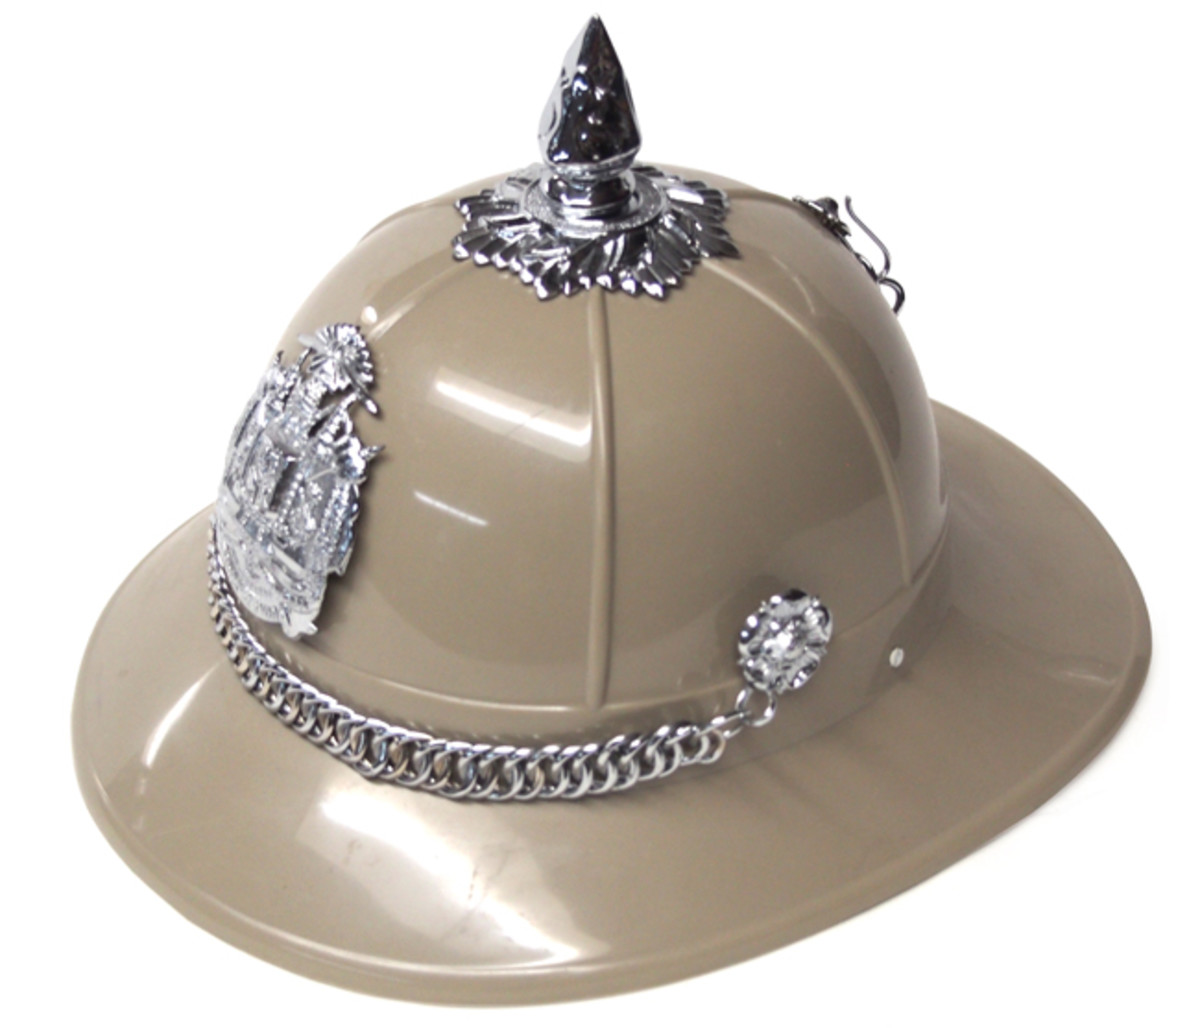 "A modern ""sun helmet."" This Thai military police helmet is actually made of plastic rather than cork or pith. It likely is more ideal for the high humidity of Thailand, but it lacks the style and flare of the cork helmets."